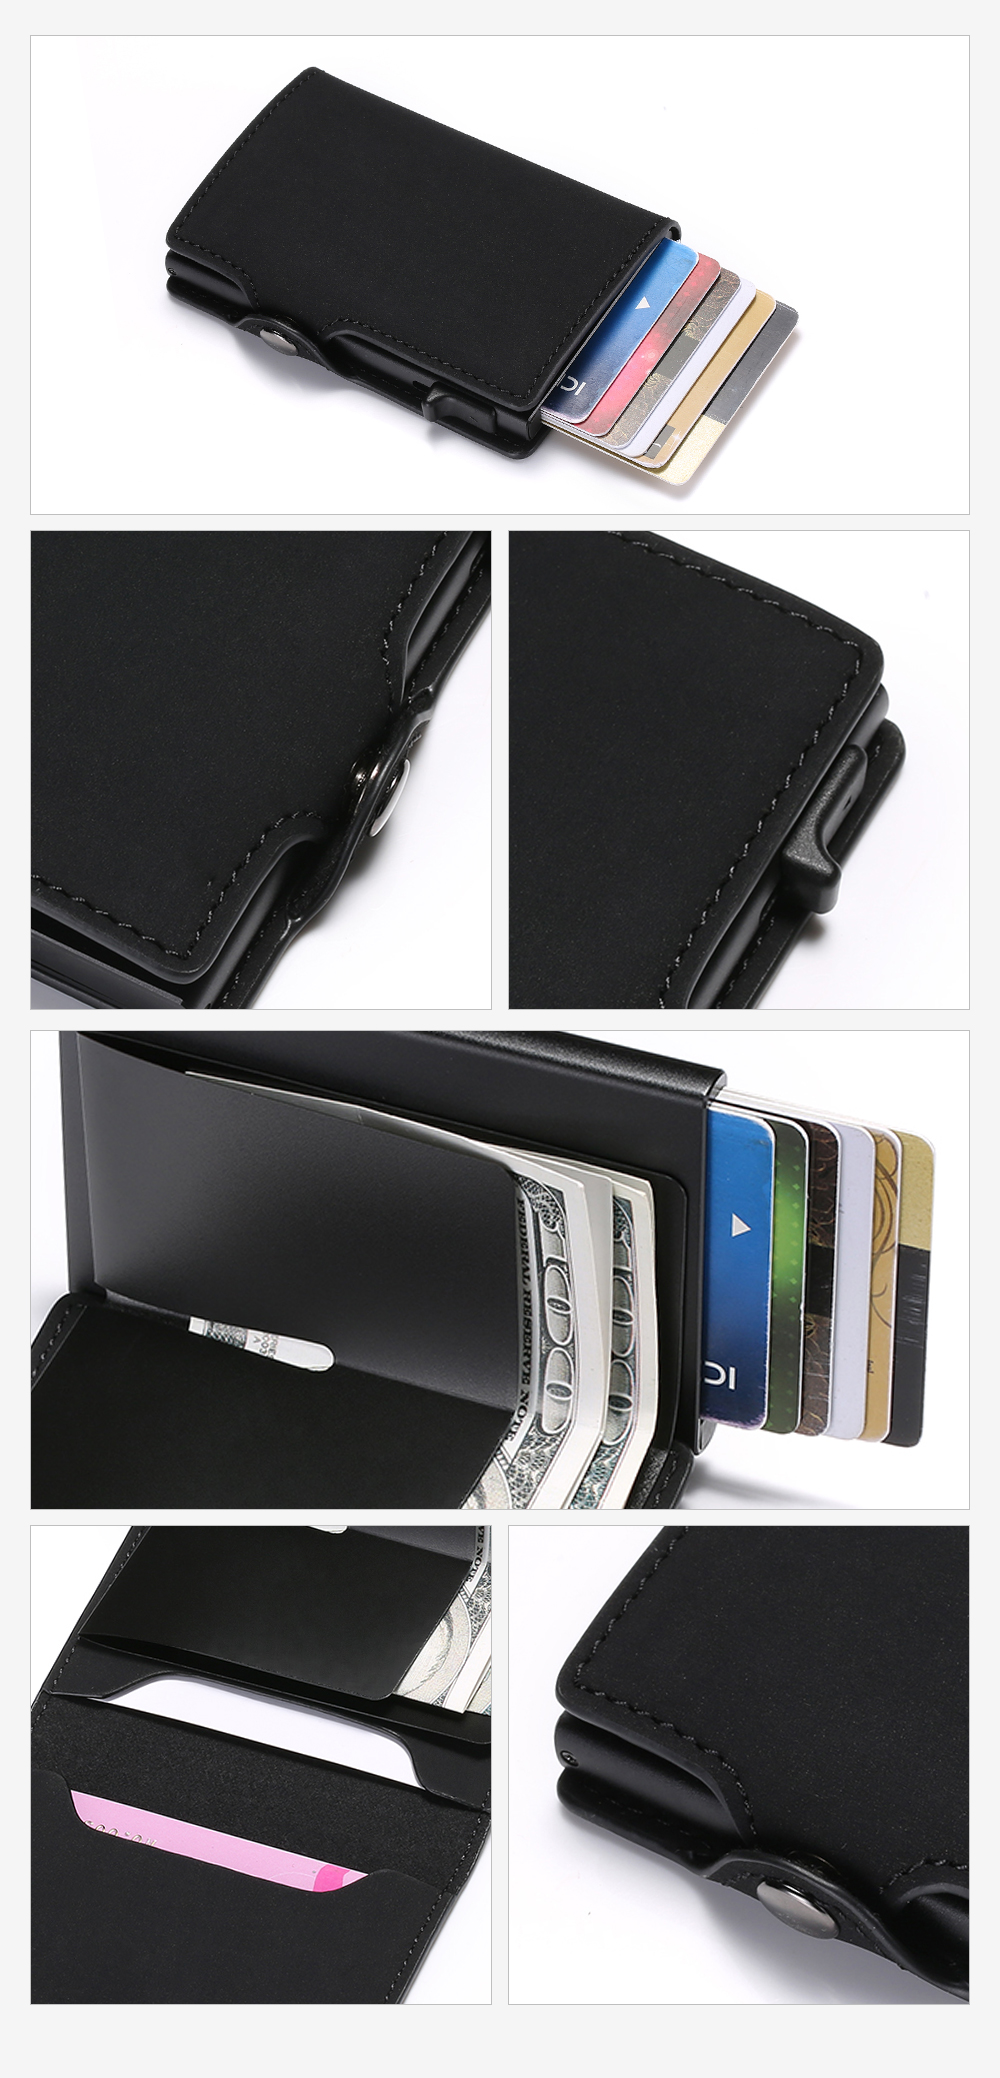 H0294ab564b784dd09a9cf5e77a6475e7t - BISI GORO Single Box Card Holder PU Leather Card Wallet New Men RFID Blocking Aluminum Smart Multifunction Slim Wallet Card Case